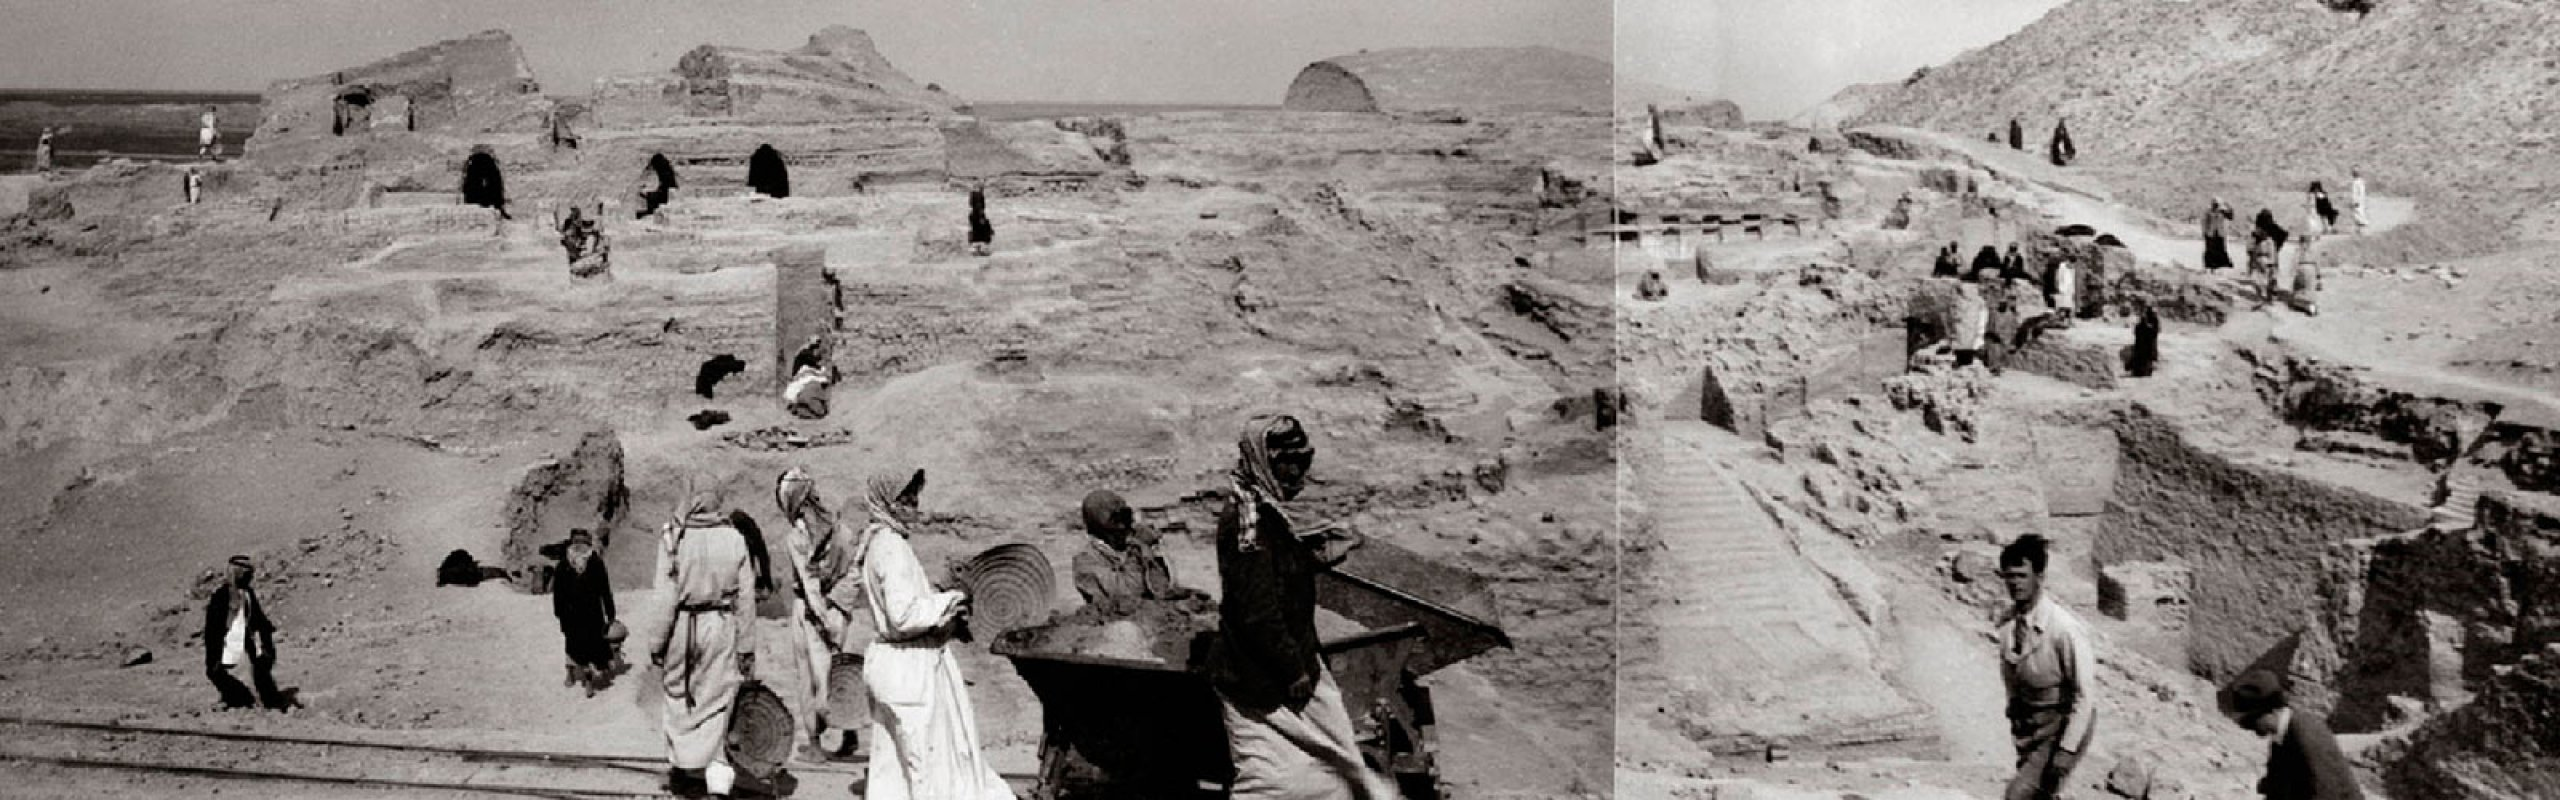 Egypt and Mesopotamia in John Alfred Spranger's 1929-1936 photo reportages